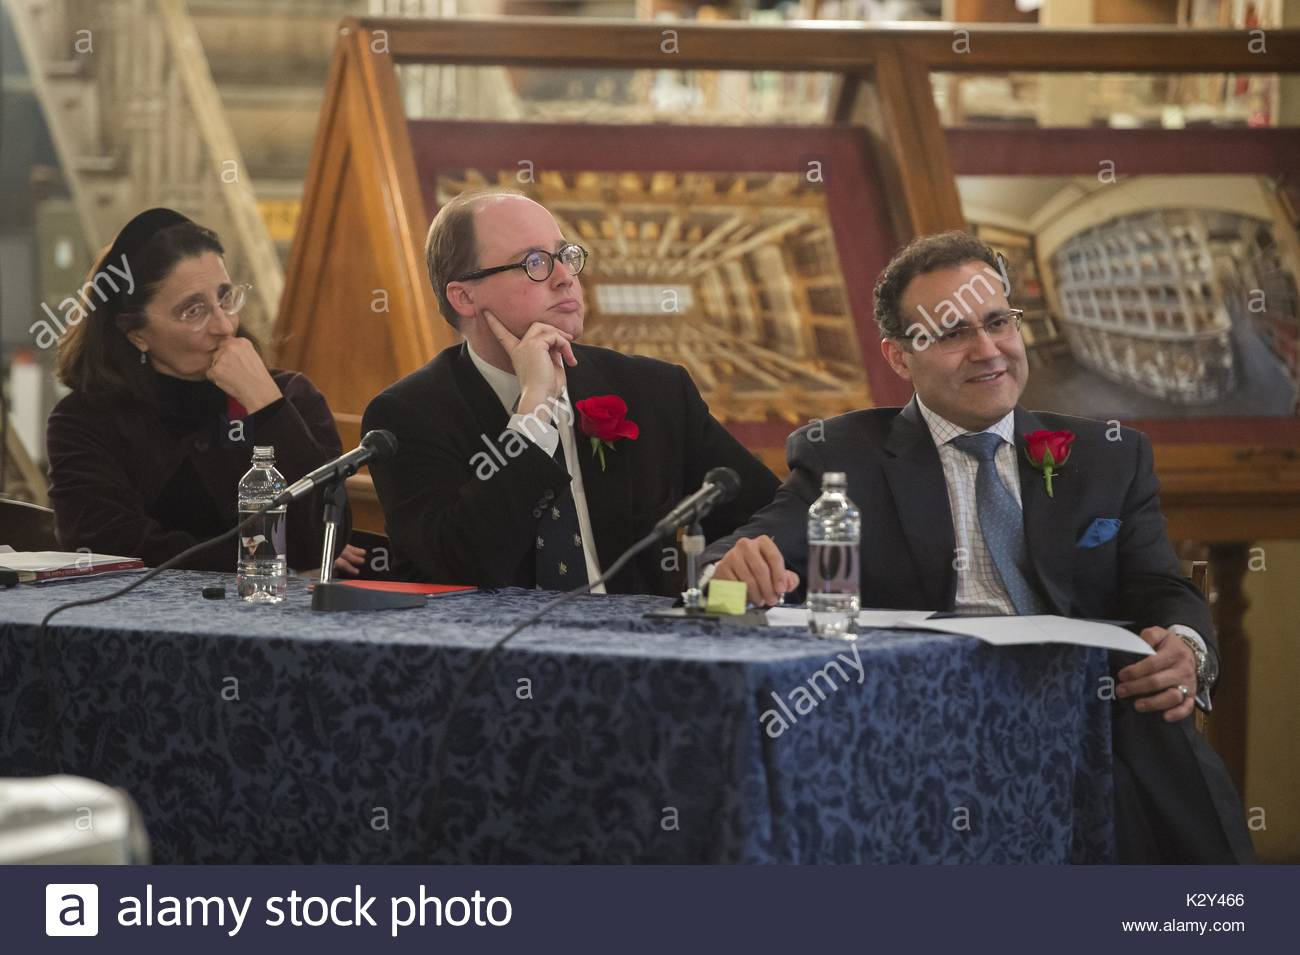 Three formally dressed panelists seated at a table with microphones look intently at a speaker at a panel on the brain at the Johns Hopkins University's George Peabody Library, Baltimore, Maryland, 2014. - Stock Image